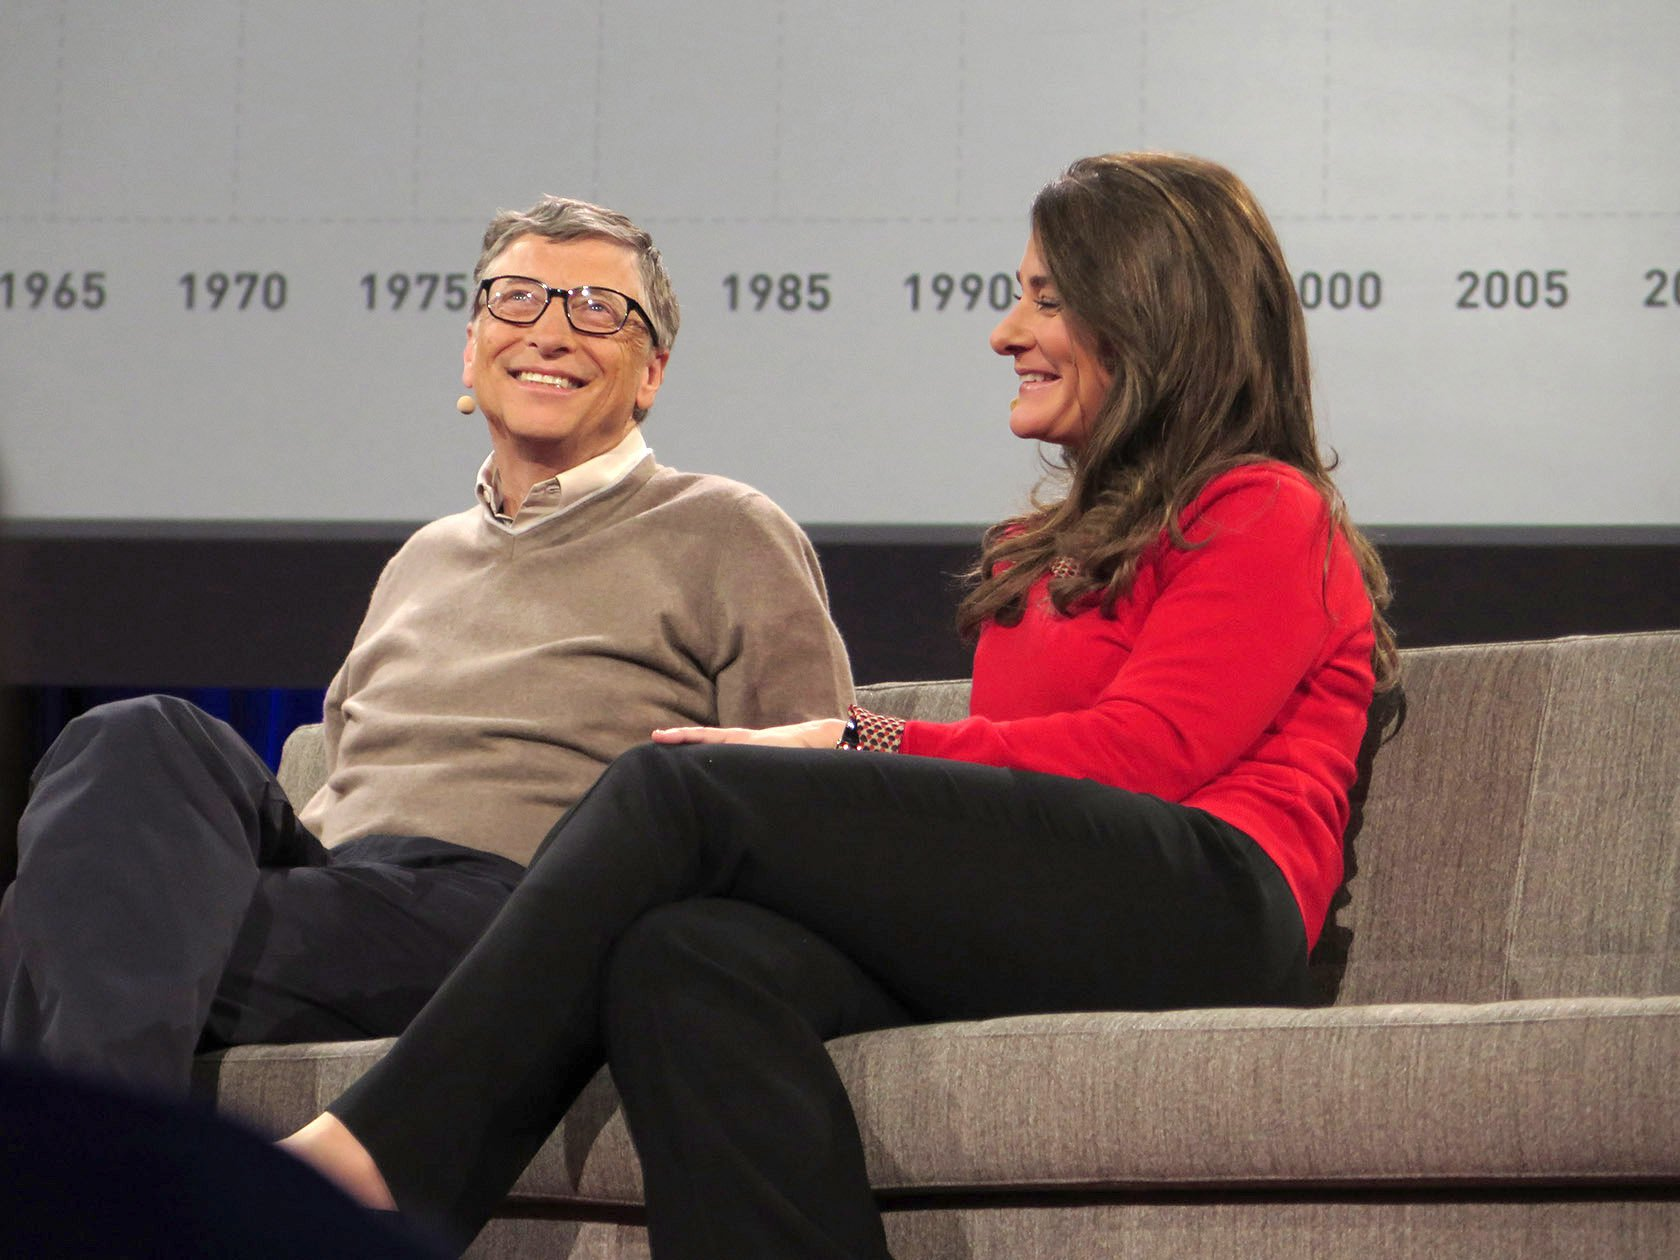 bill melinda gates suzie katz flickr.jpg